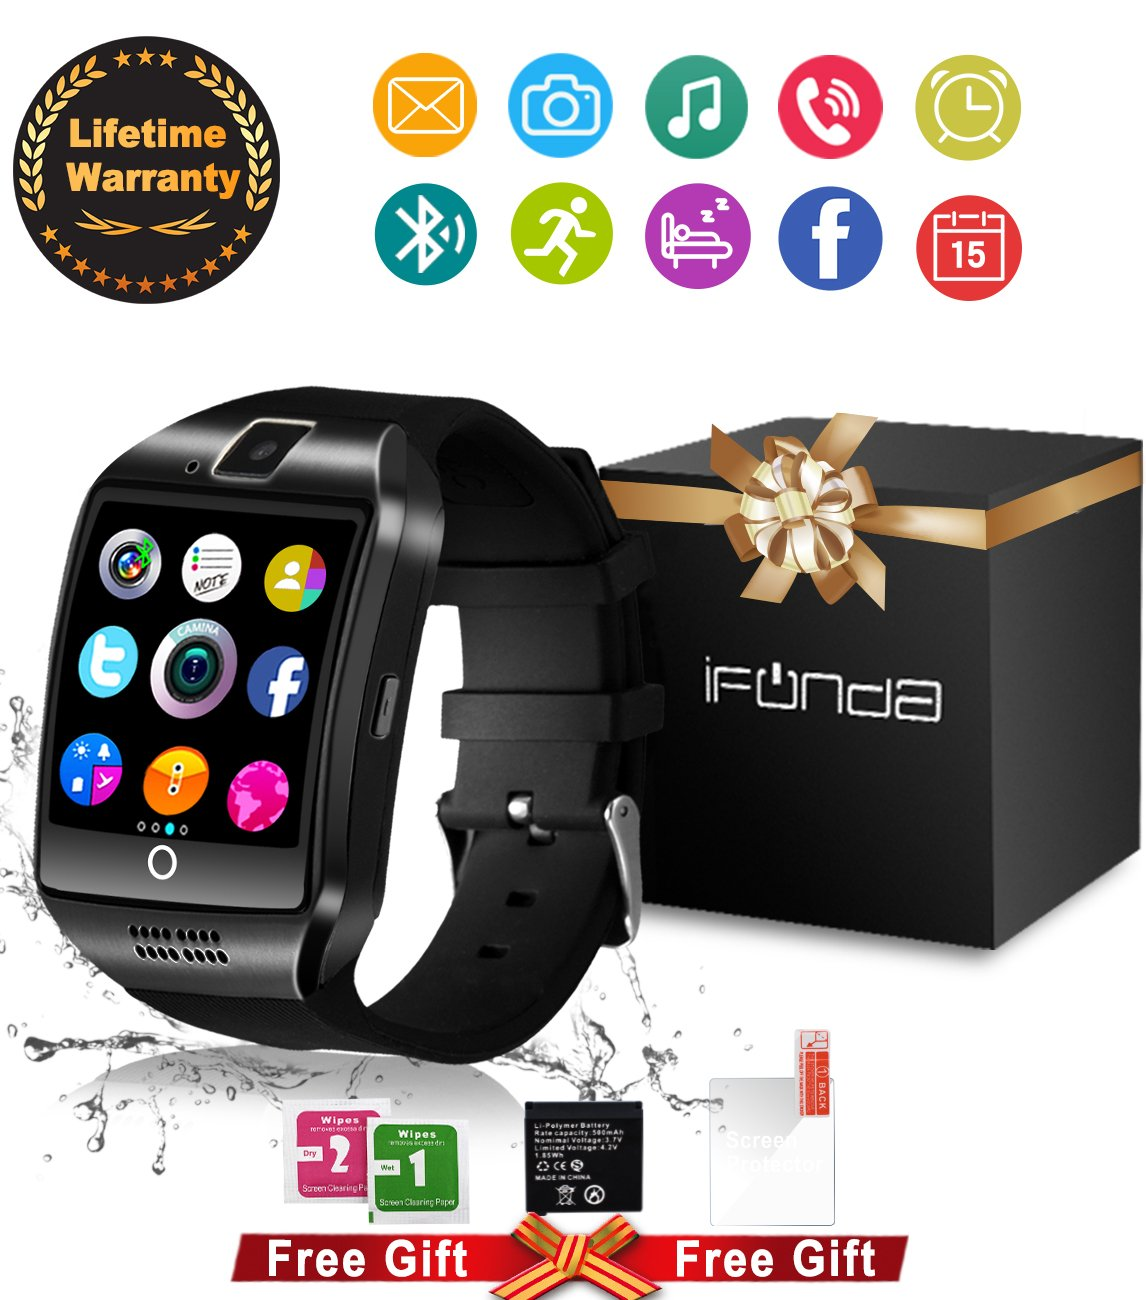 underwater indigi pin at more unlocked you find phone t smart out android wifi watches wrist details smartwatch mobile smartphone the atandt can link